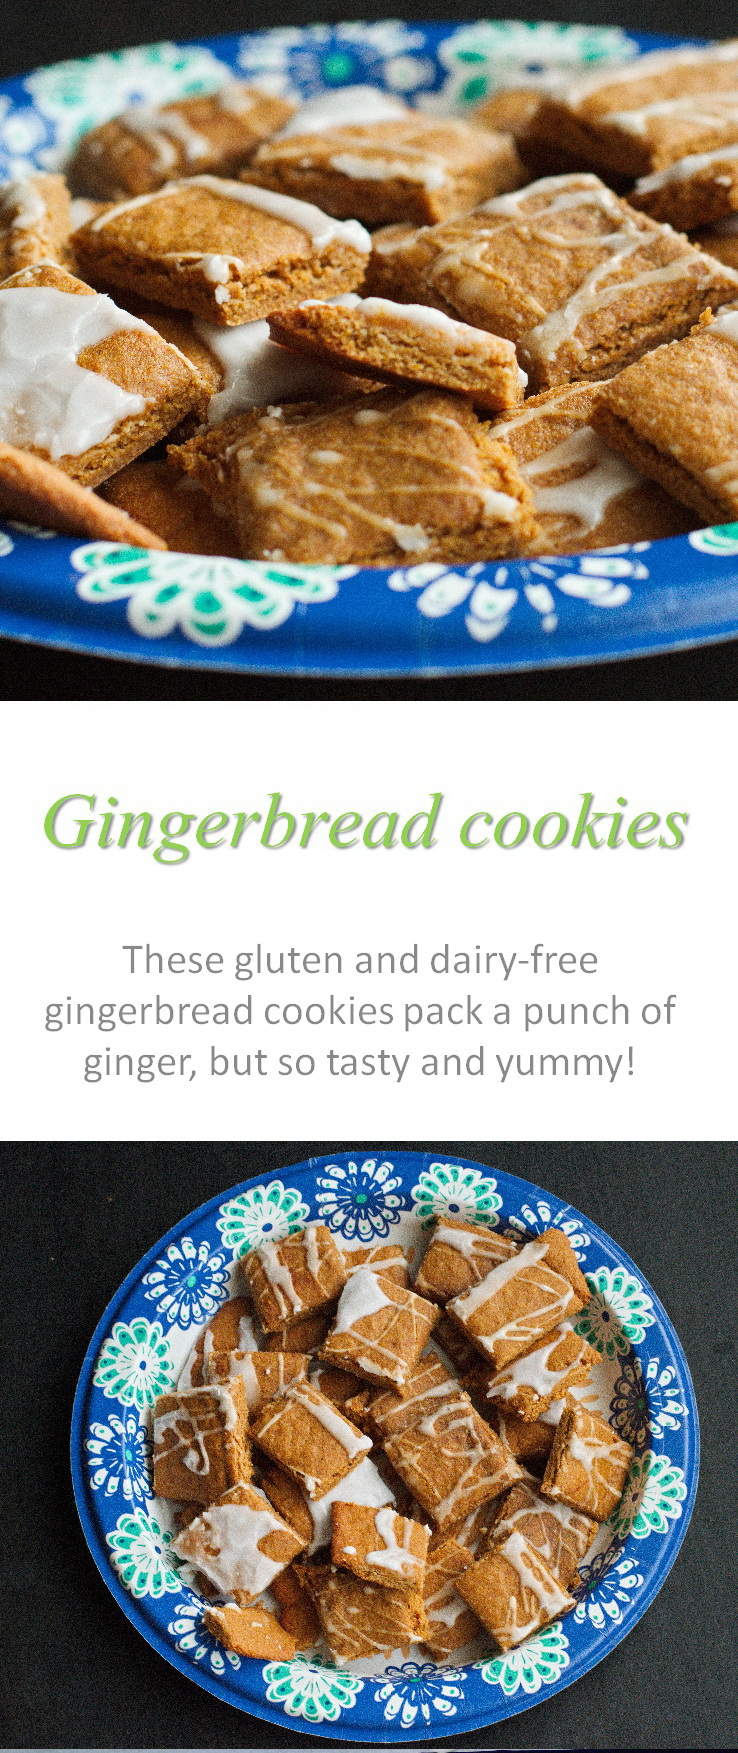 These flavorful gluten and dairy-free gingerbread cookies are full of Christmas spices, but can (and should) be eaten any time of year!